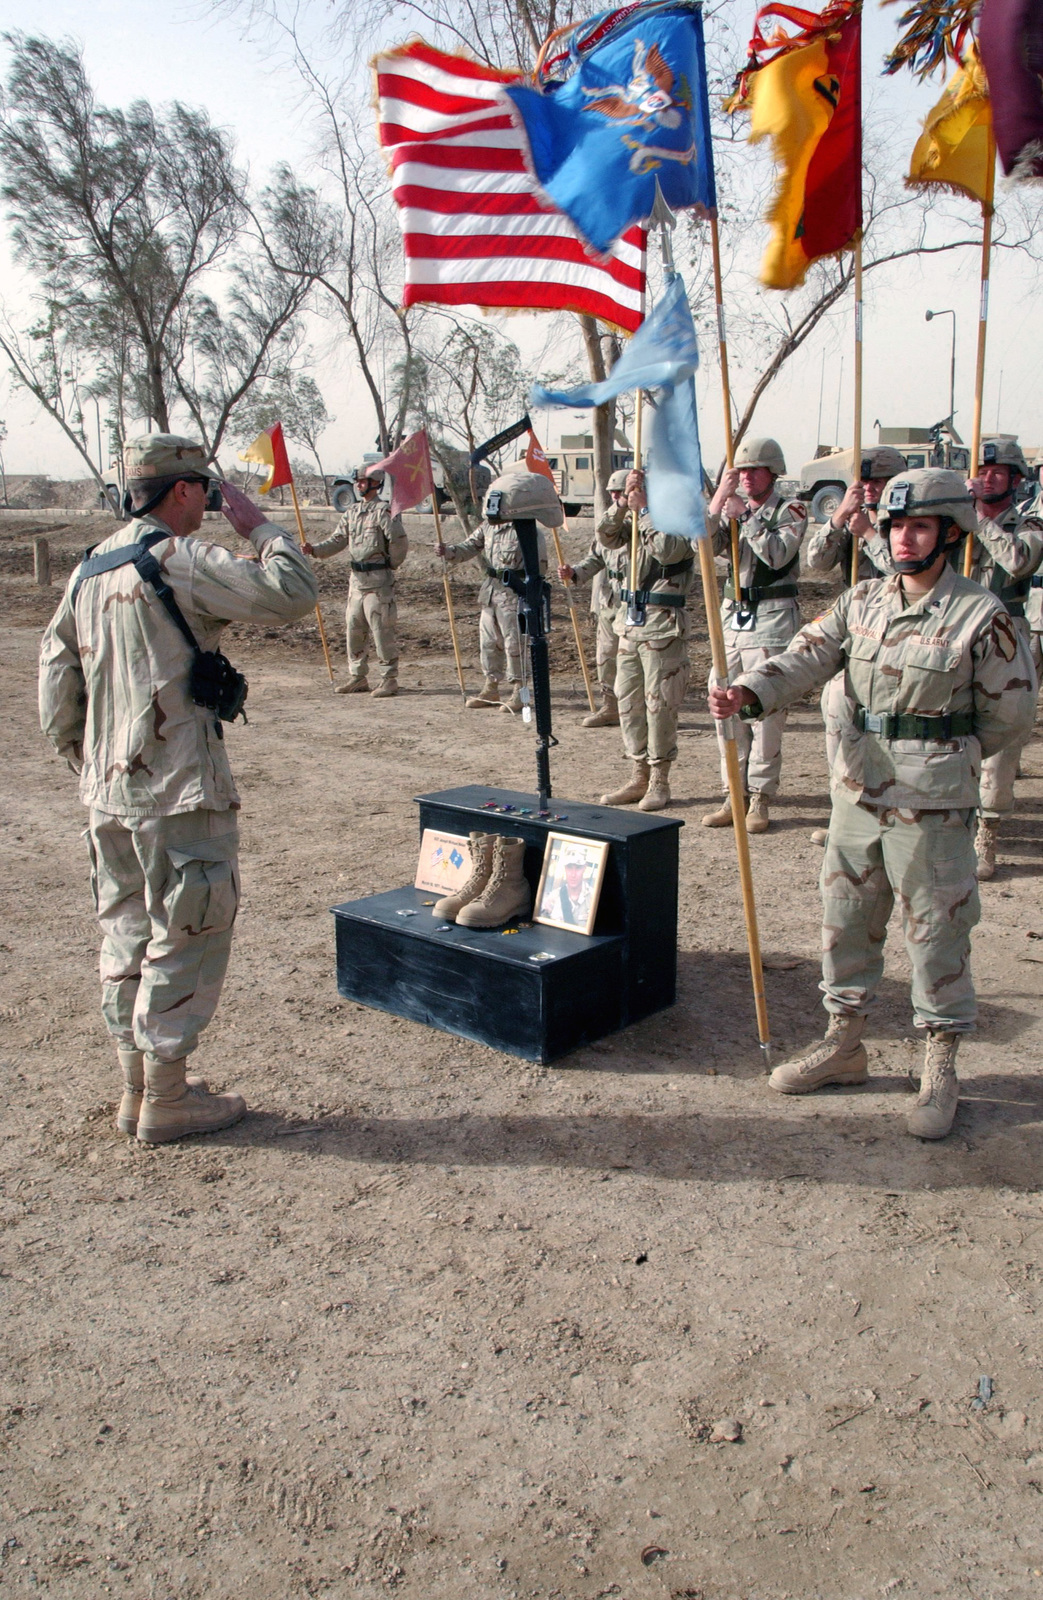 U.S. Army Soldiers pay tribute to U.S. Army SGT. Joseph Michael Nolan during a field memorial service at Camp Fallujah, Iraq, on Nov. 23, 2004. SGT. Nolan, who was assigned to Bravo Company, 312th Military Intelligence Battalion, 2nd Brigade Combat Team, 1ST Cavalry Regiment, 1ST Infantry Divison, was killed in the line of duty on Nov. 18, 2004, near the city of Fallujah, Iraq. (USAF PHOTO by SENIOR AIRMAN Christopher A. Marasky) (Released)